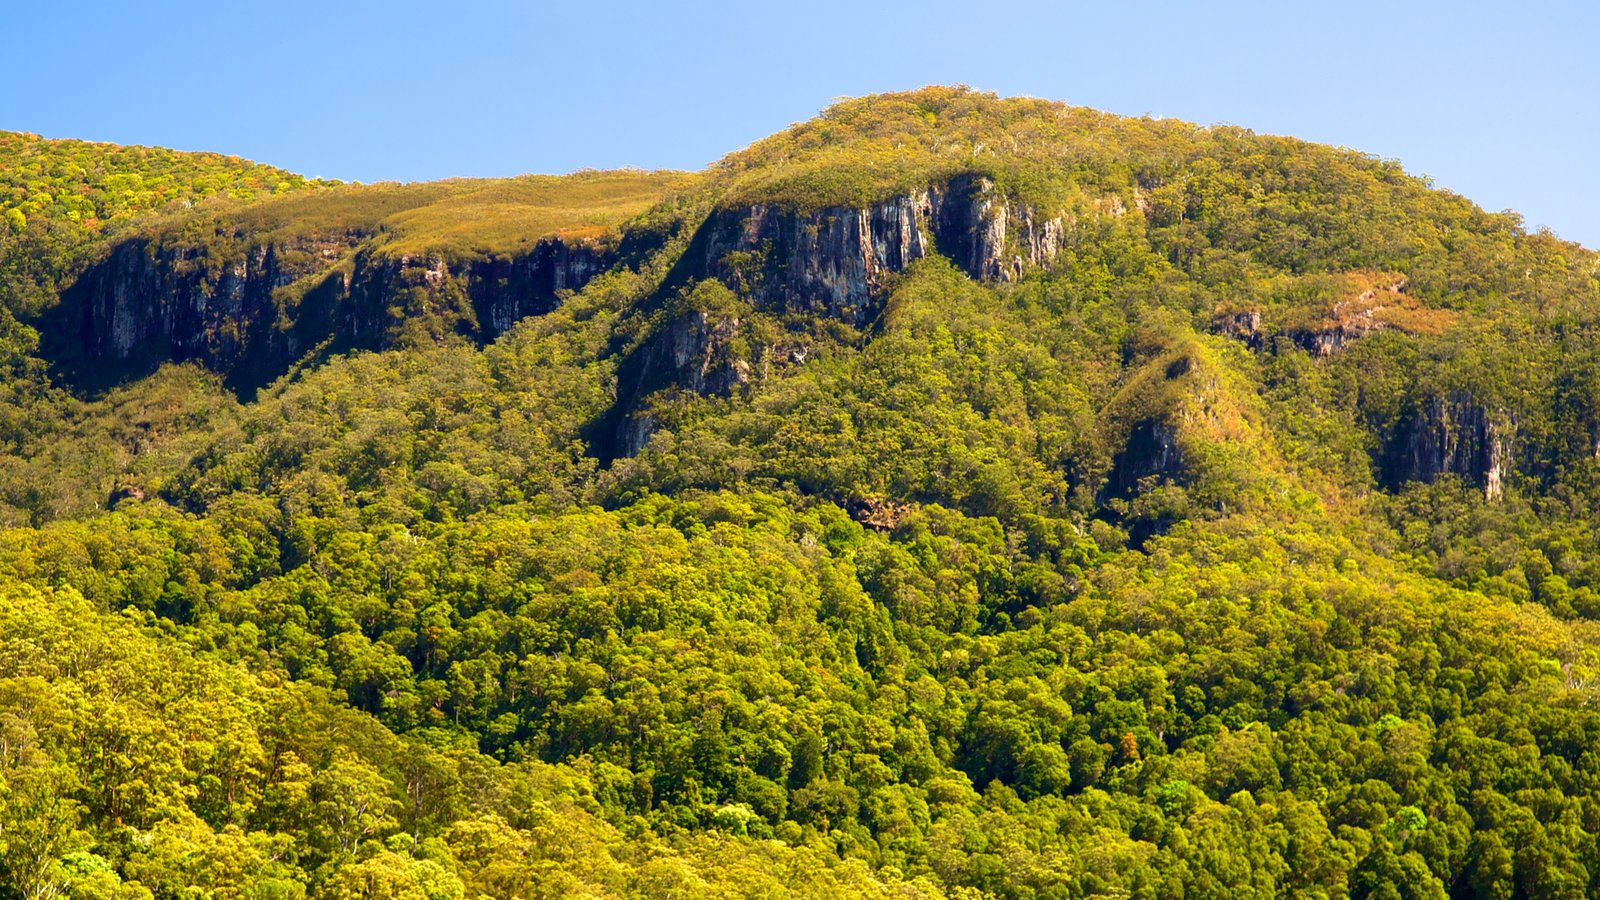 Springbrook National Park which includes landscape views and forests